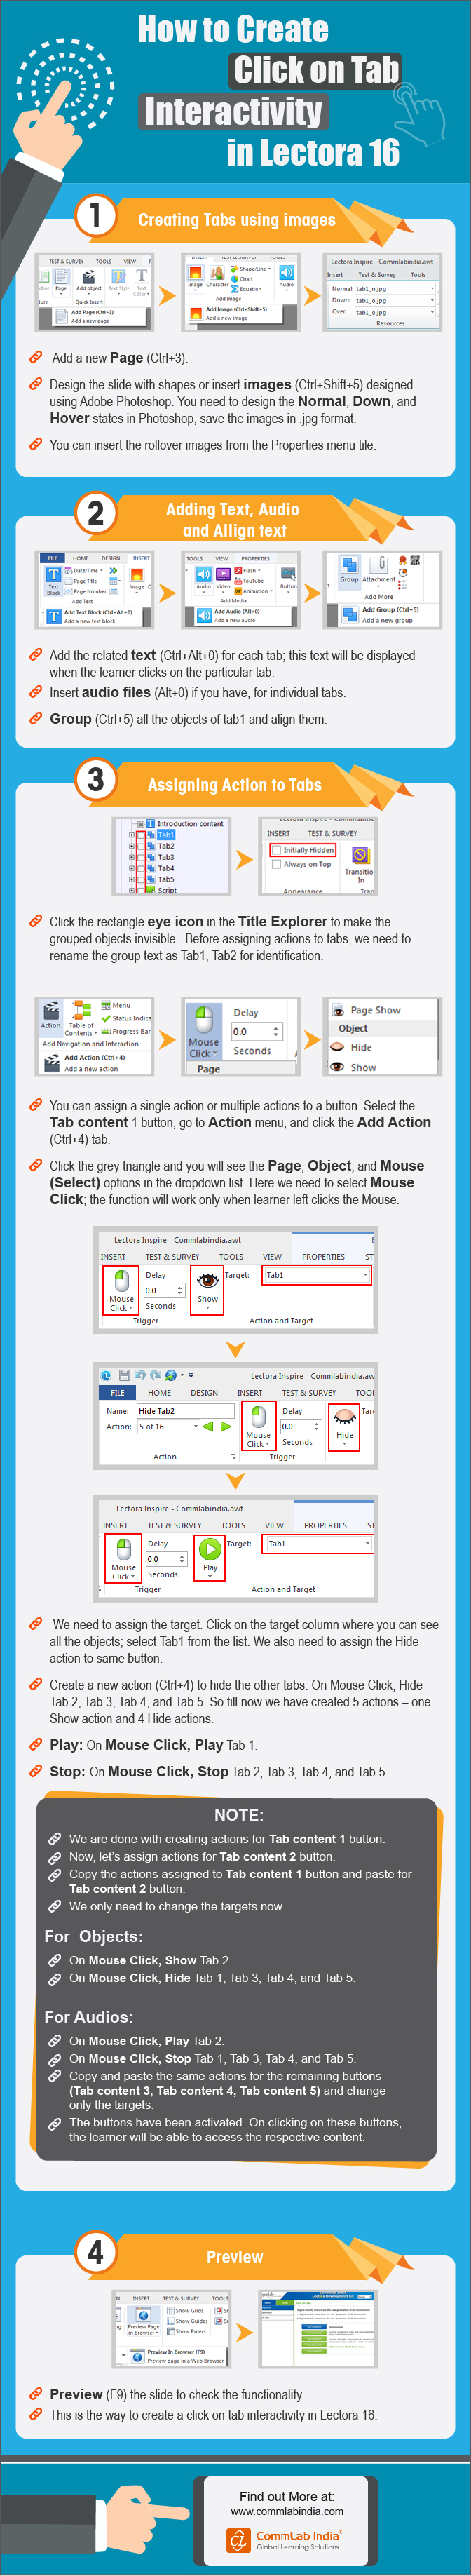 How to Create Click On Tabs Interactivity in Lectora 16 [Infographic]